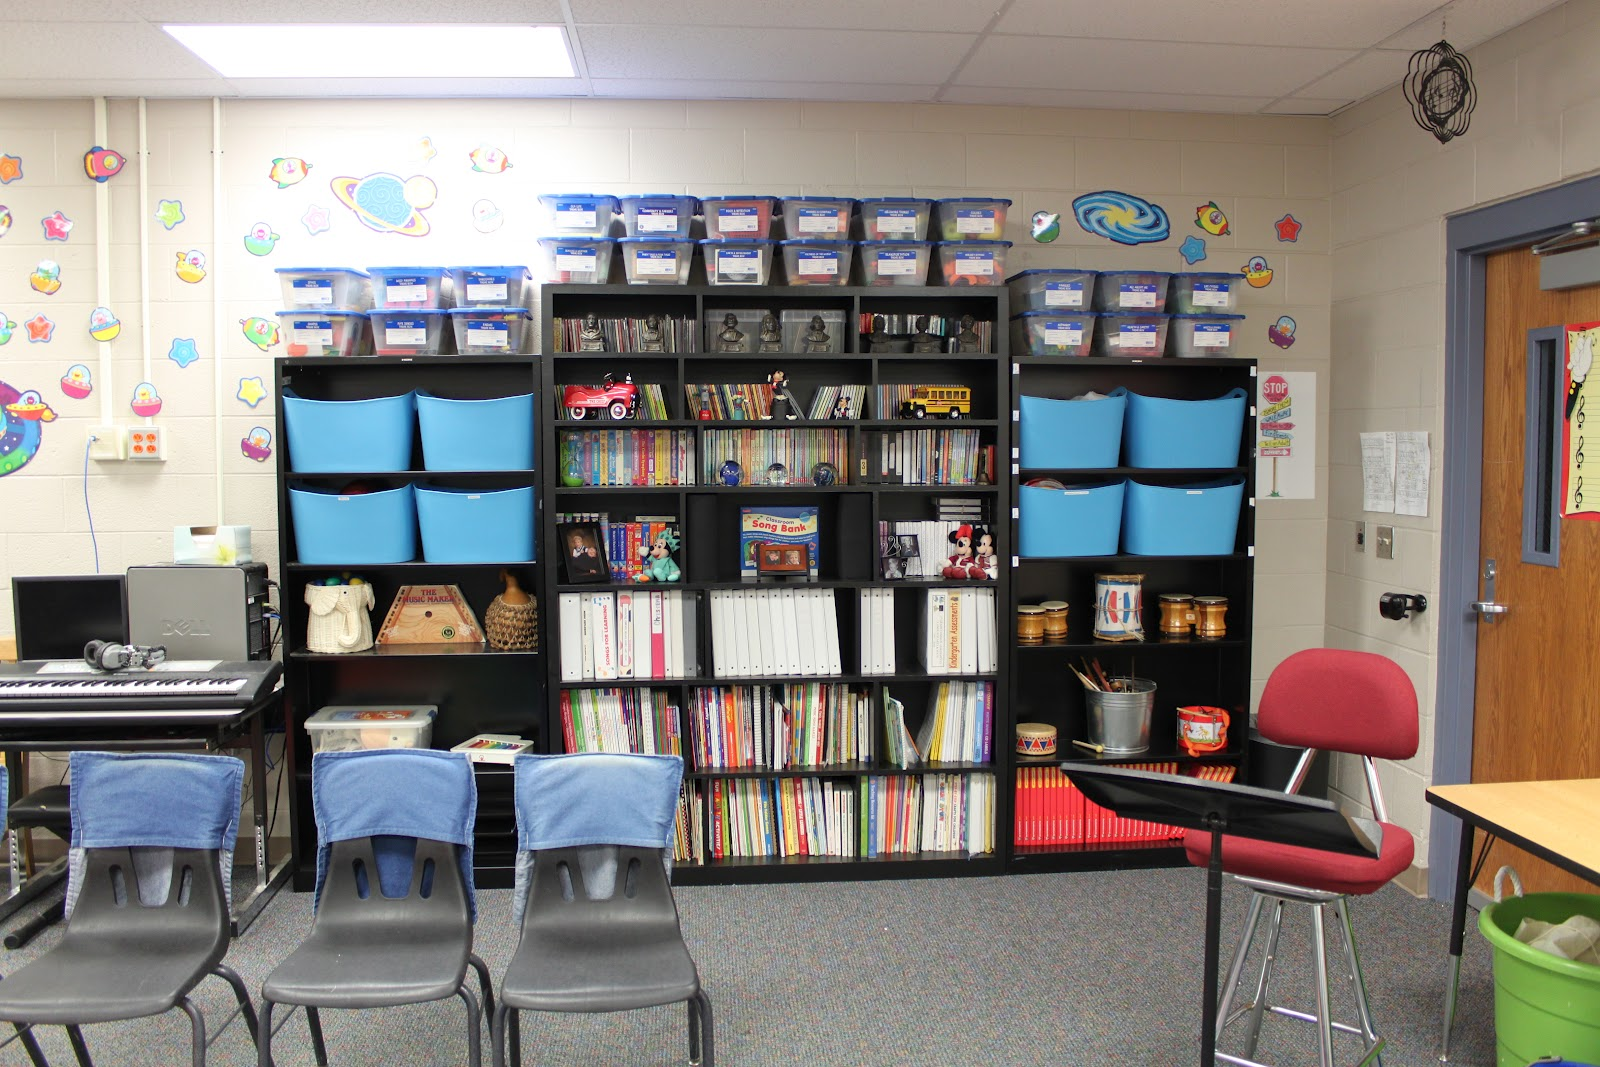 Music Classroom Design Ideas ~ Made for music teachers setting up a classroom